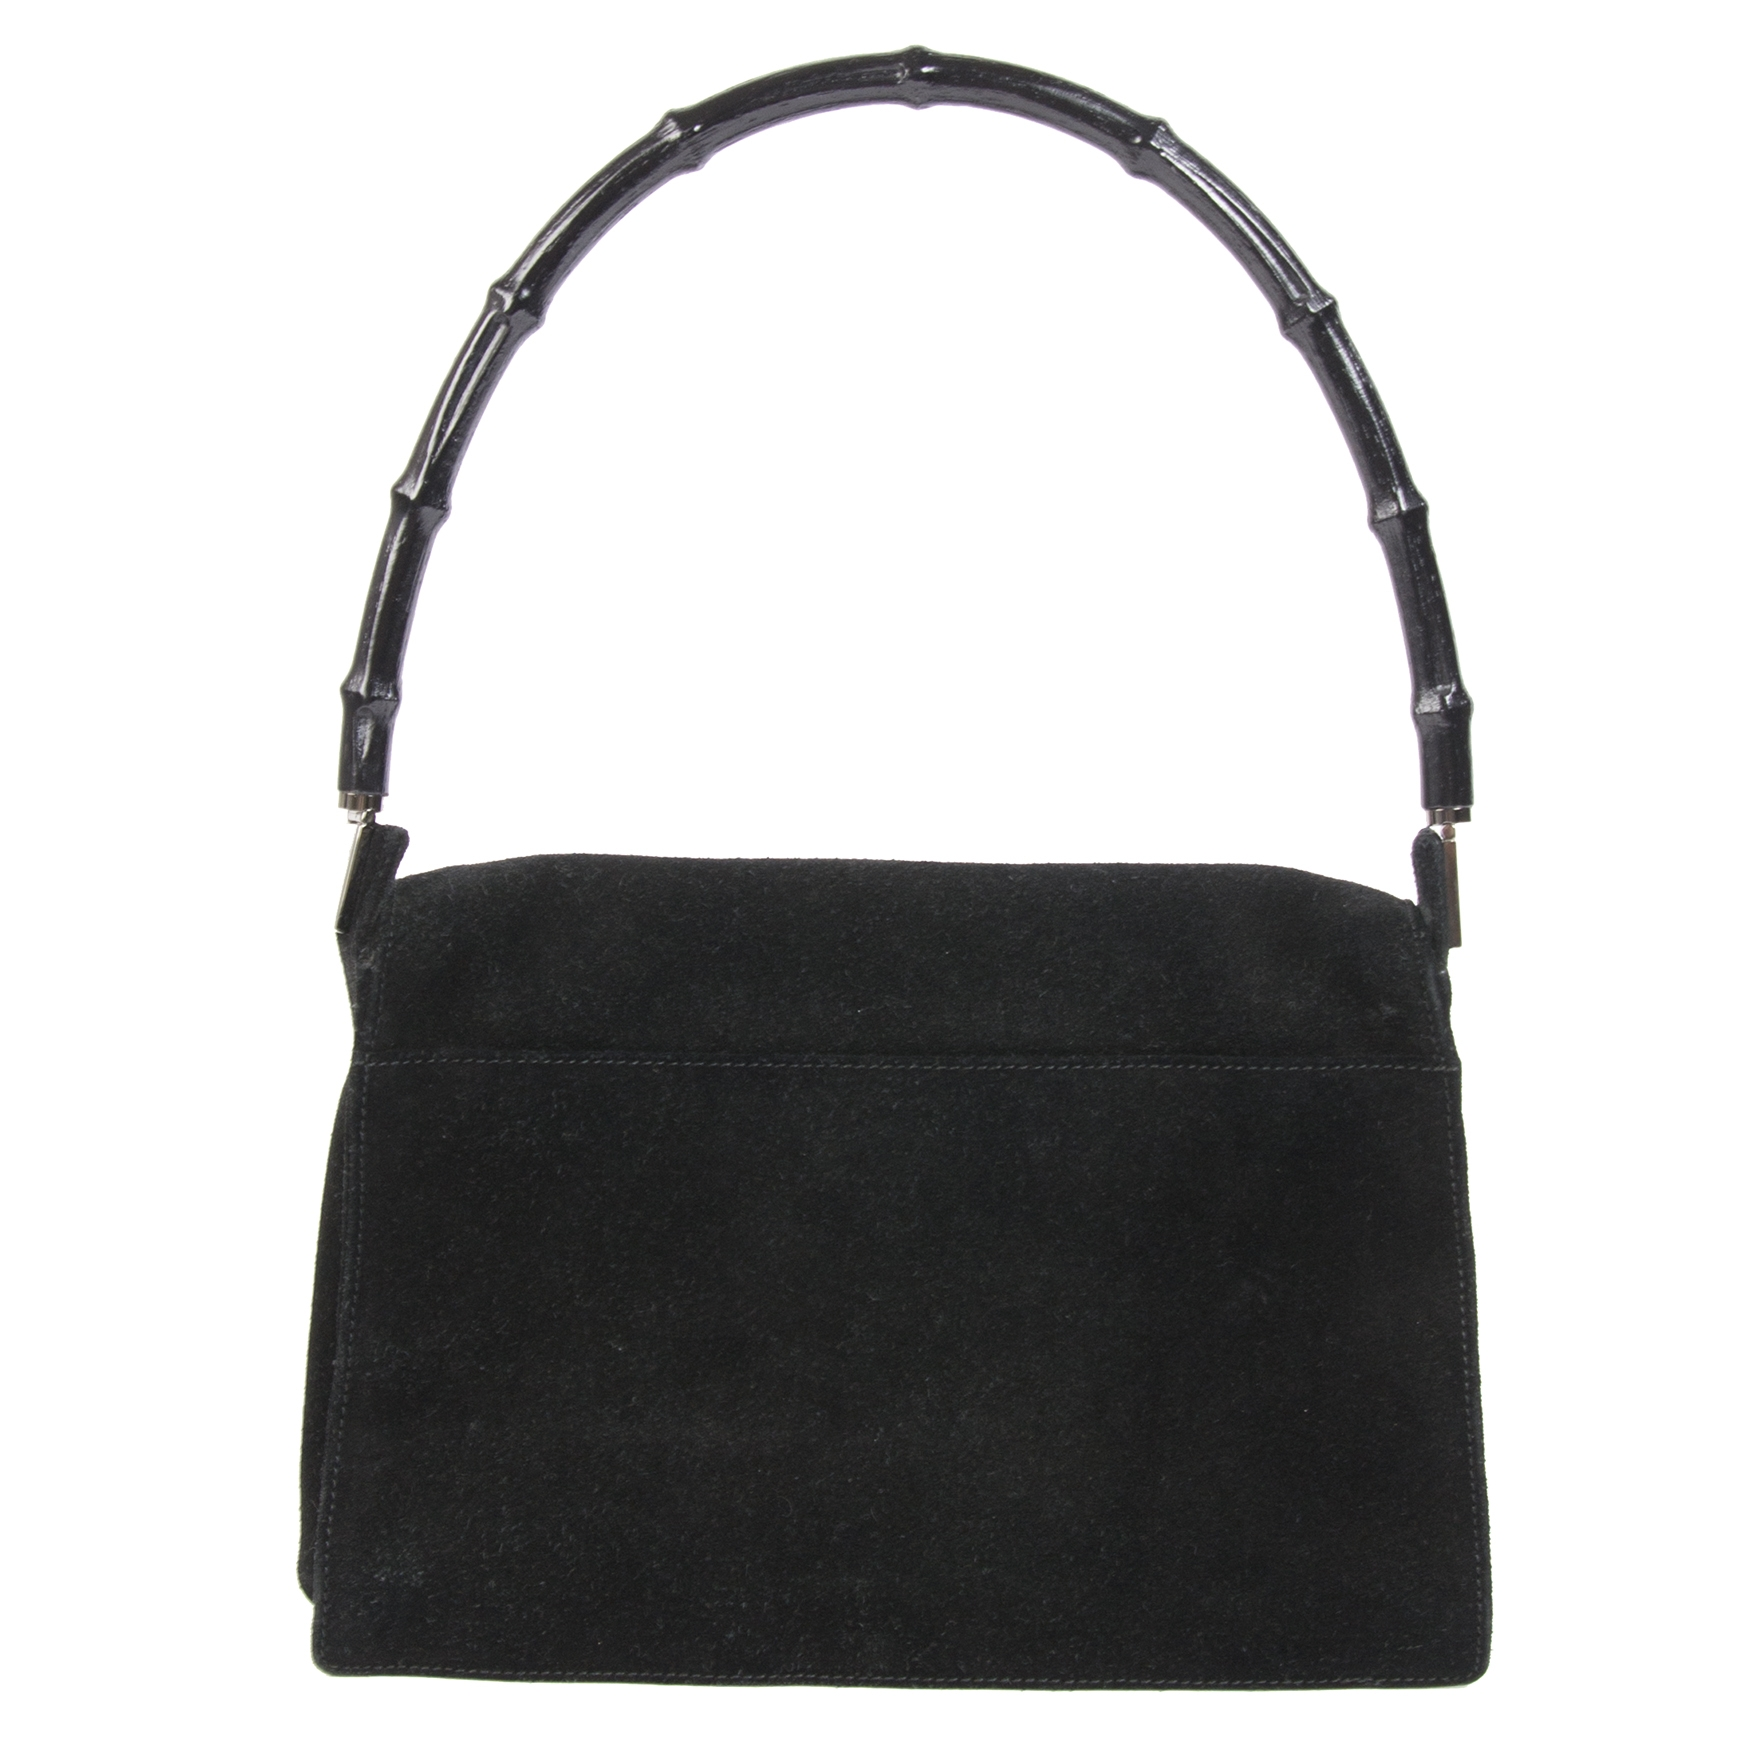 Gucci Black Suede Bamboo Shoulder Bag available at Labellov secondhand luxury in Antwerp